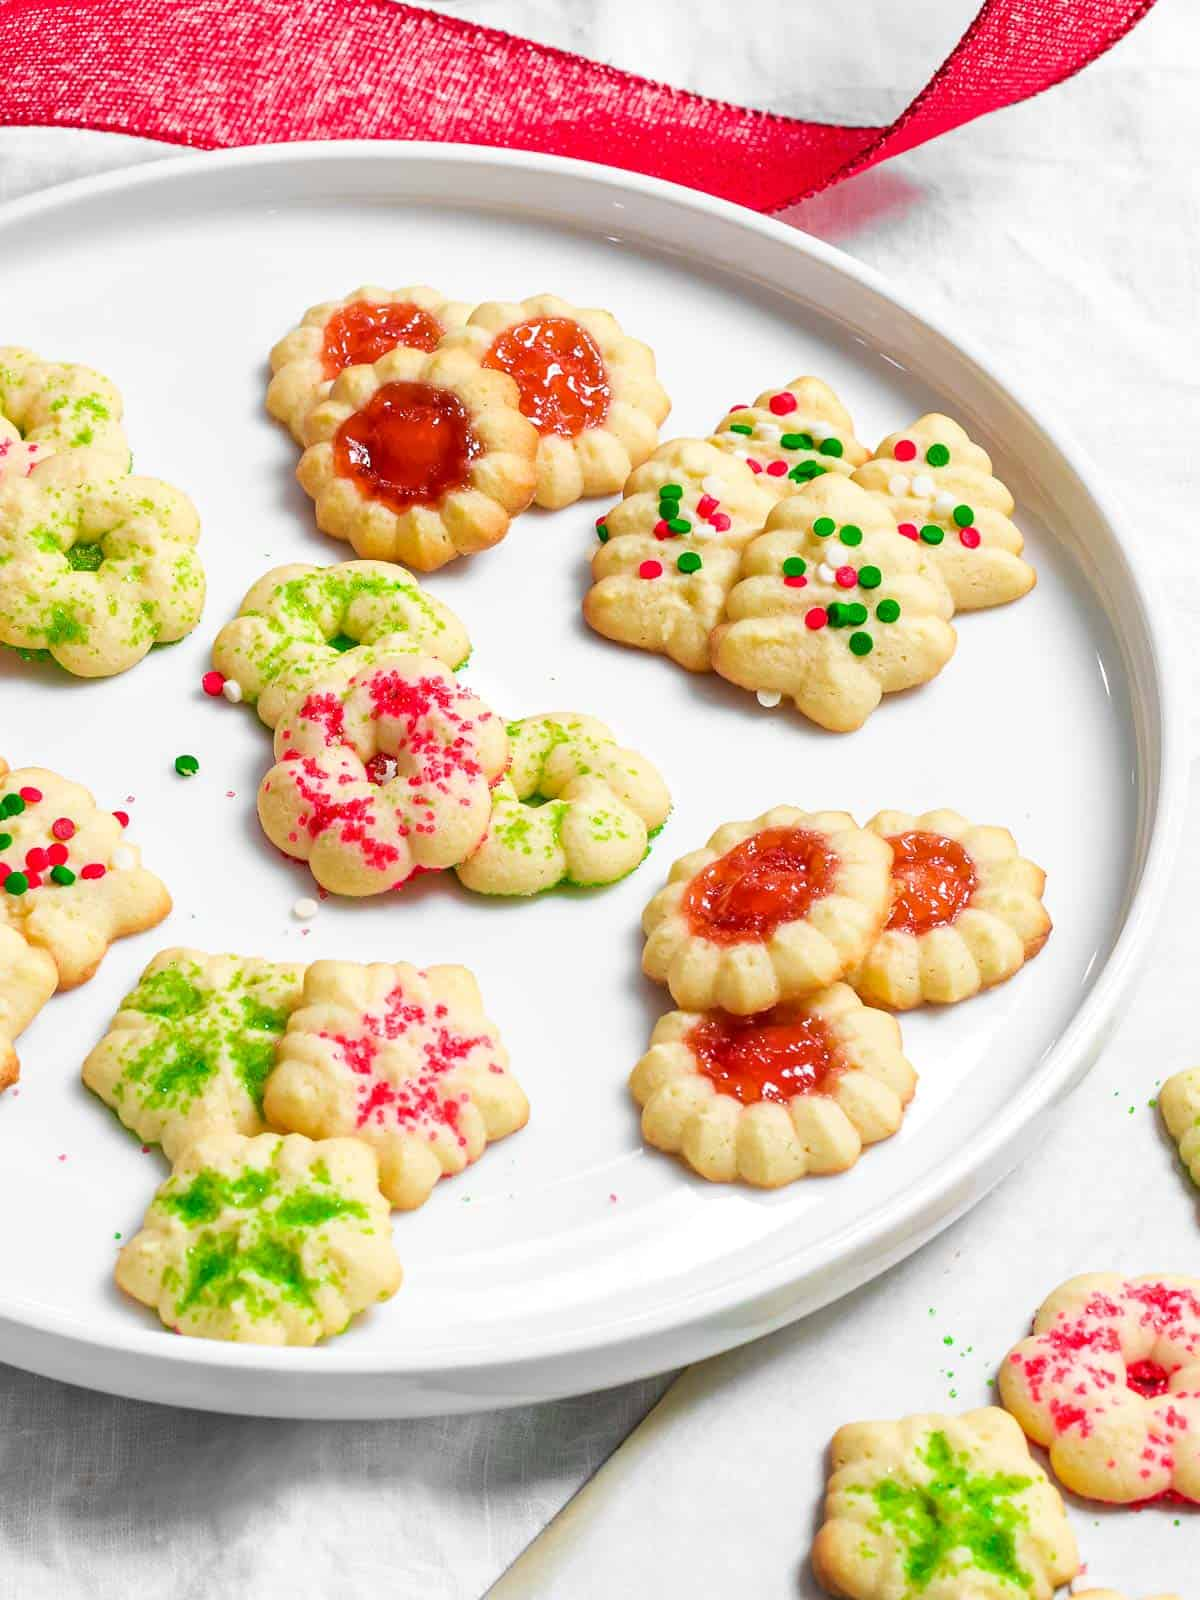 Easy Christmas spritz cookies in the shapes of trees, snowflakes, and wreaths decorated with red and green holiday sprinkles on a plate.